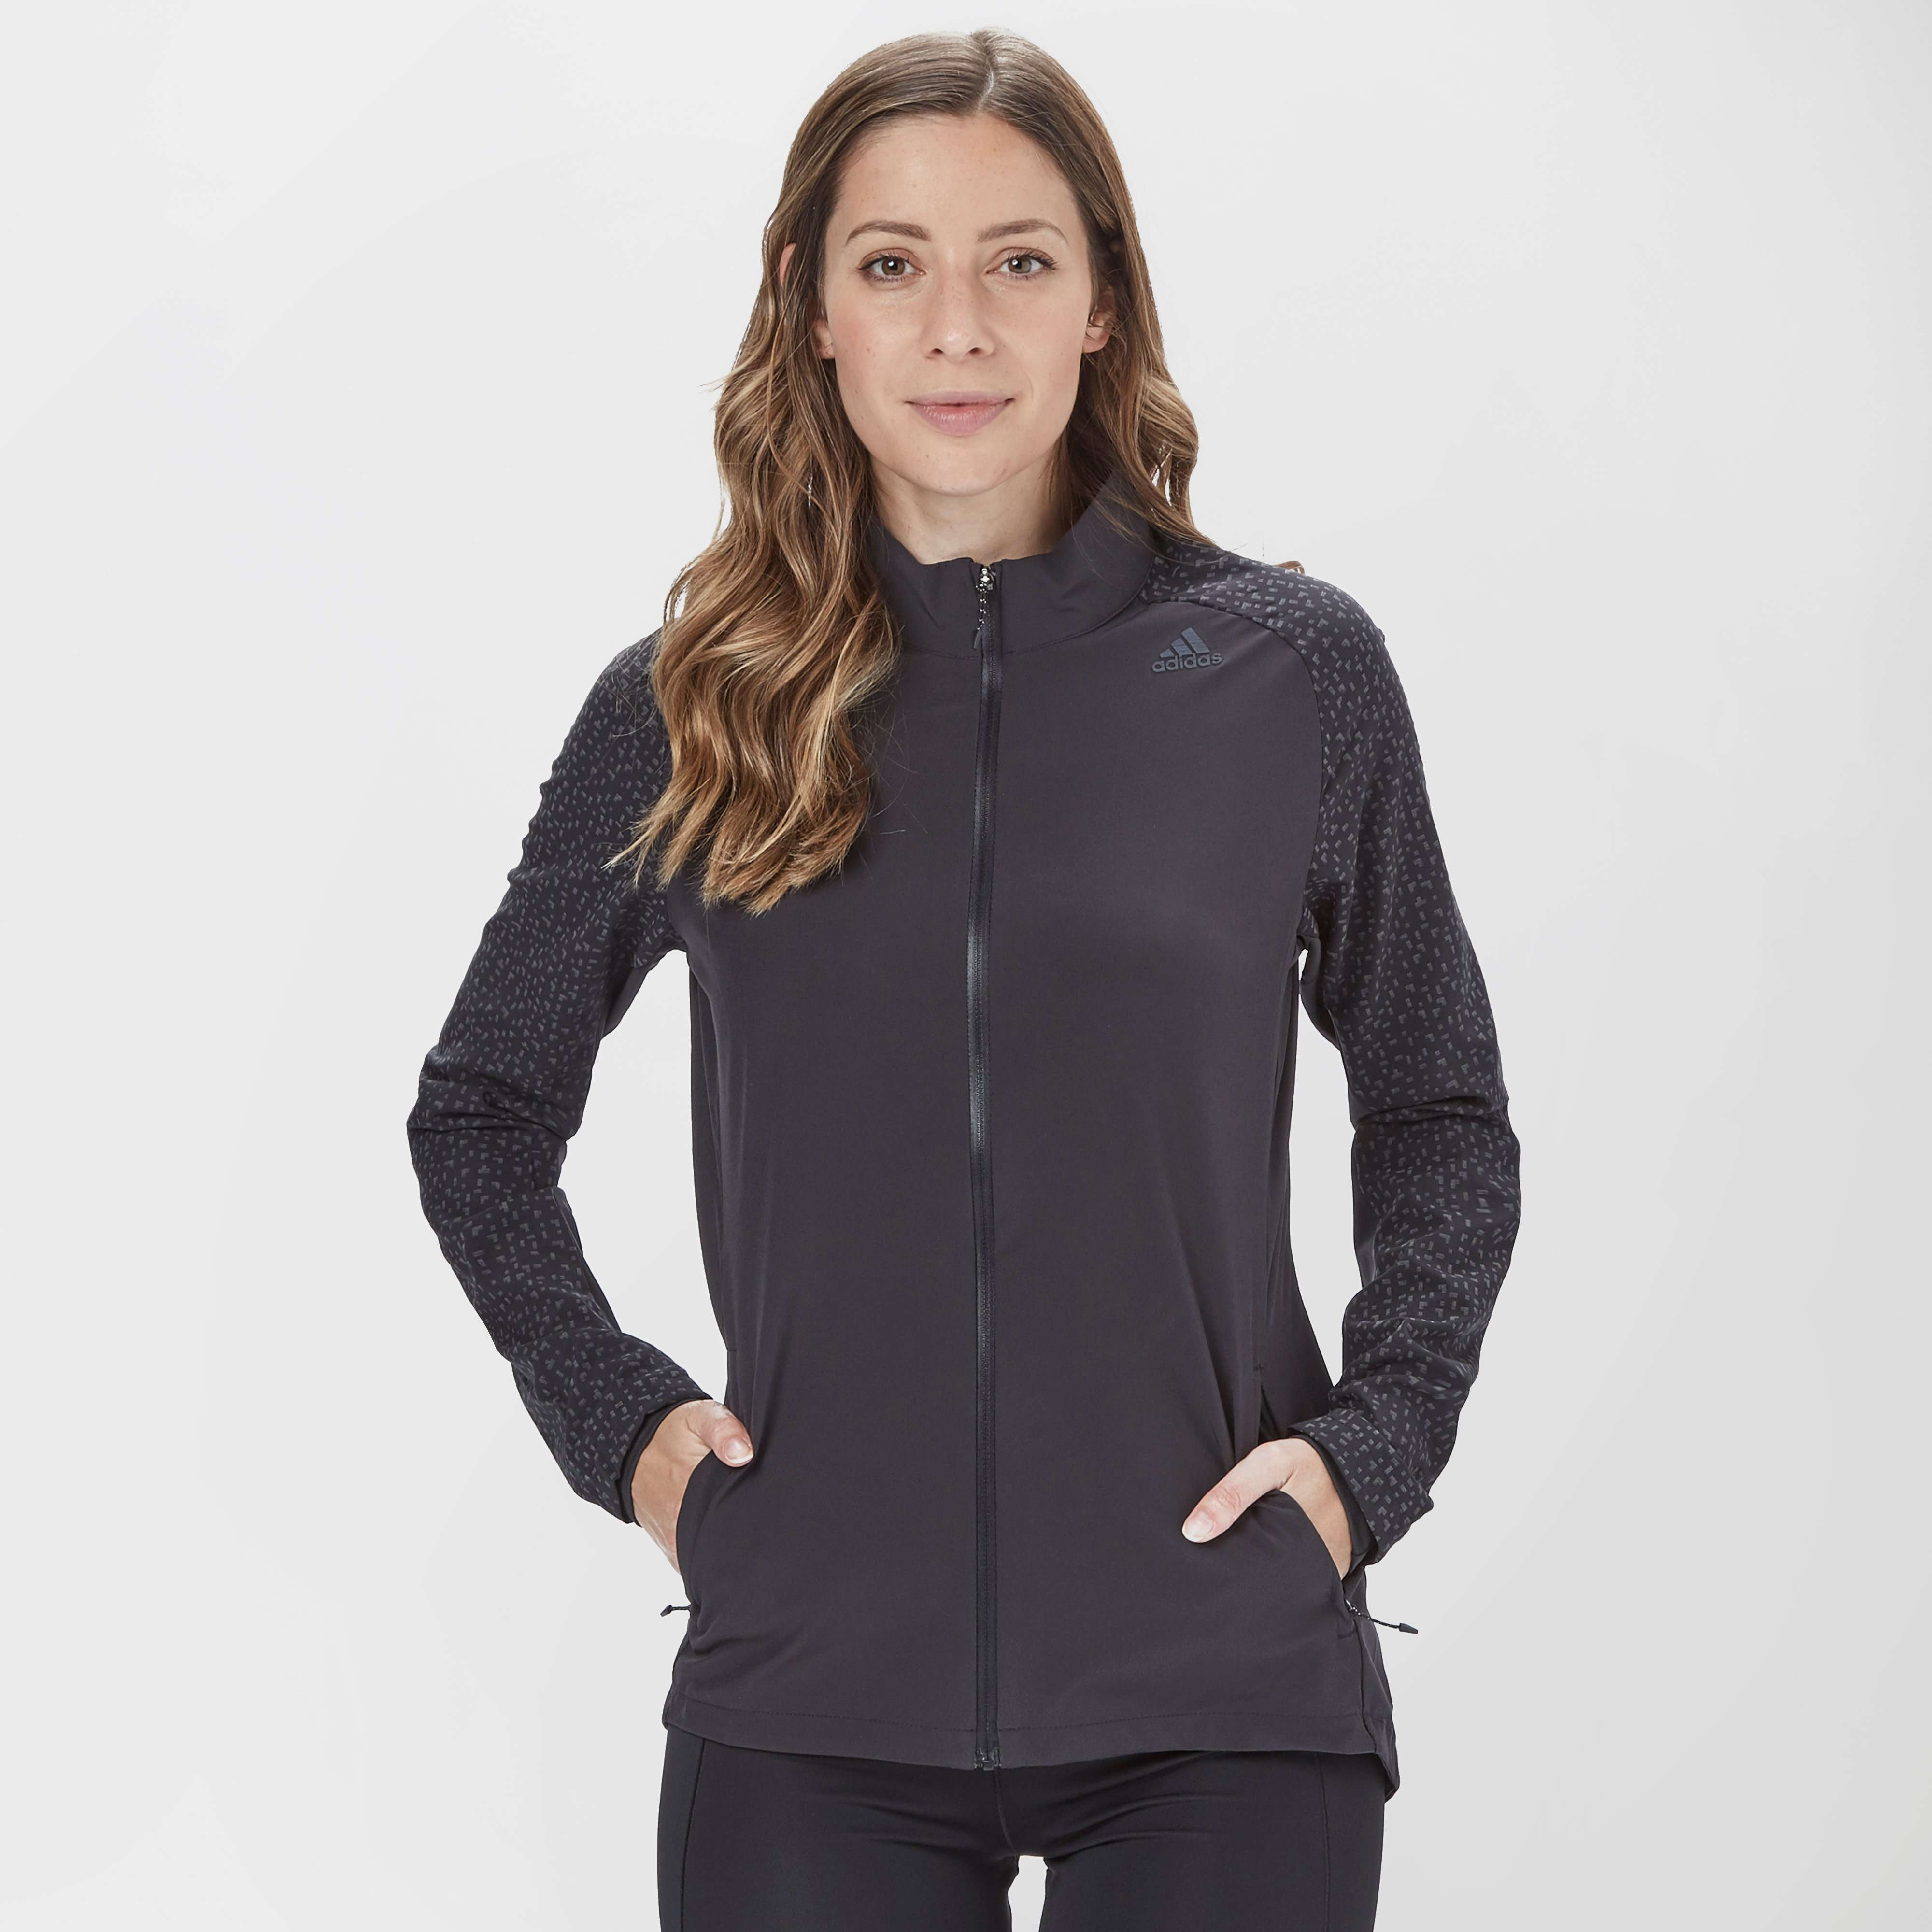 ADIDAS Women's Supernova Storm Jacket